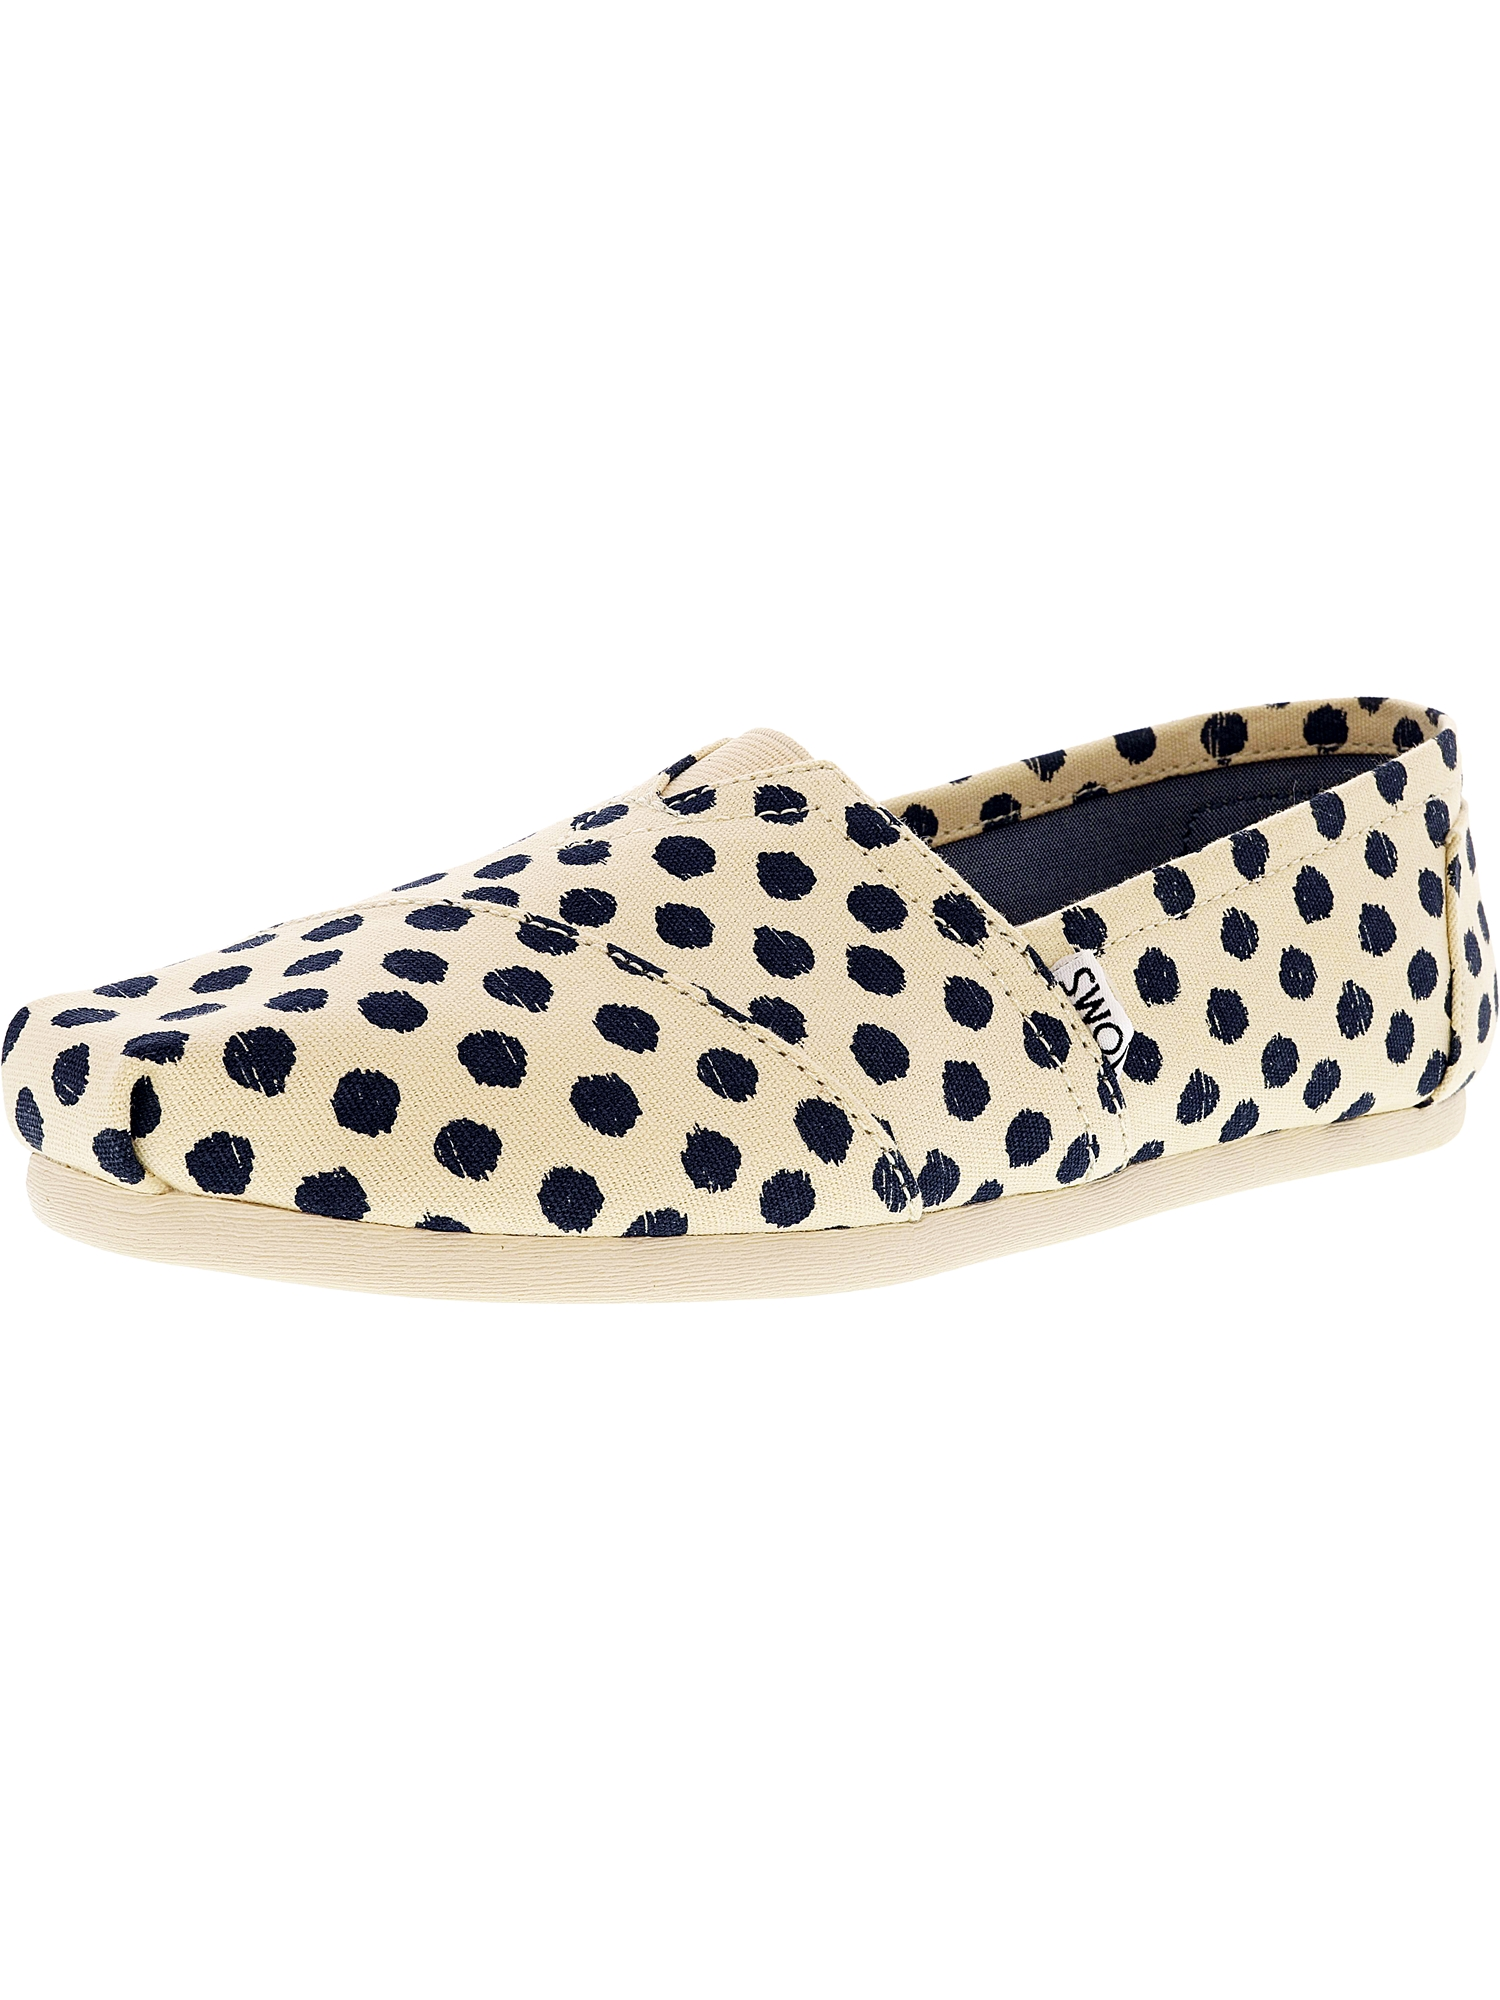 Toms Women's Classic Canvas Natural Navy Polka Dot Ankle-High Flat Shoe - 8M